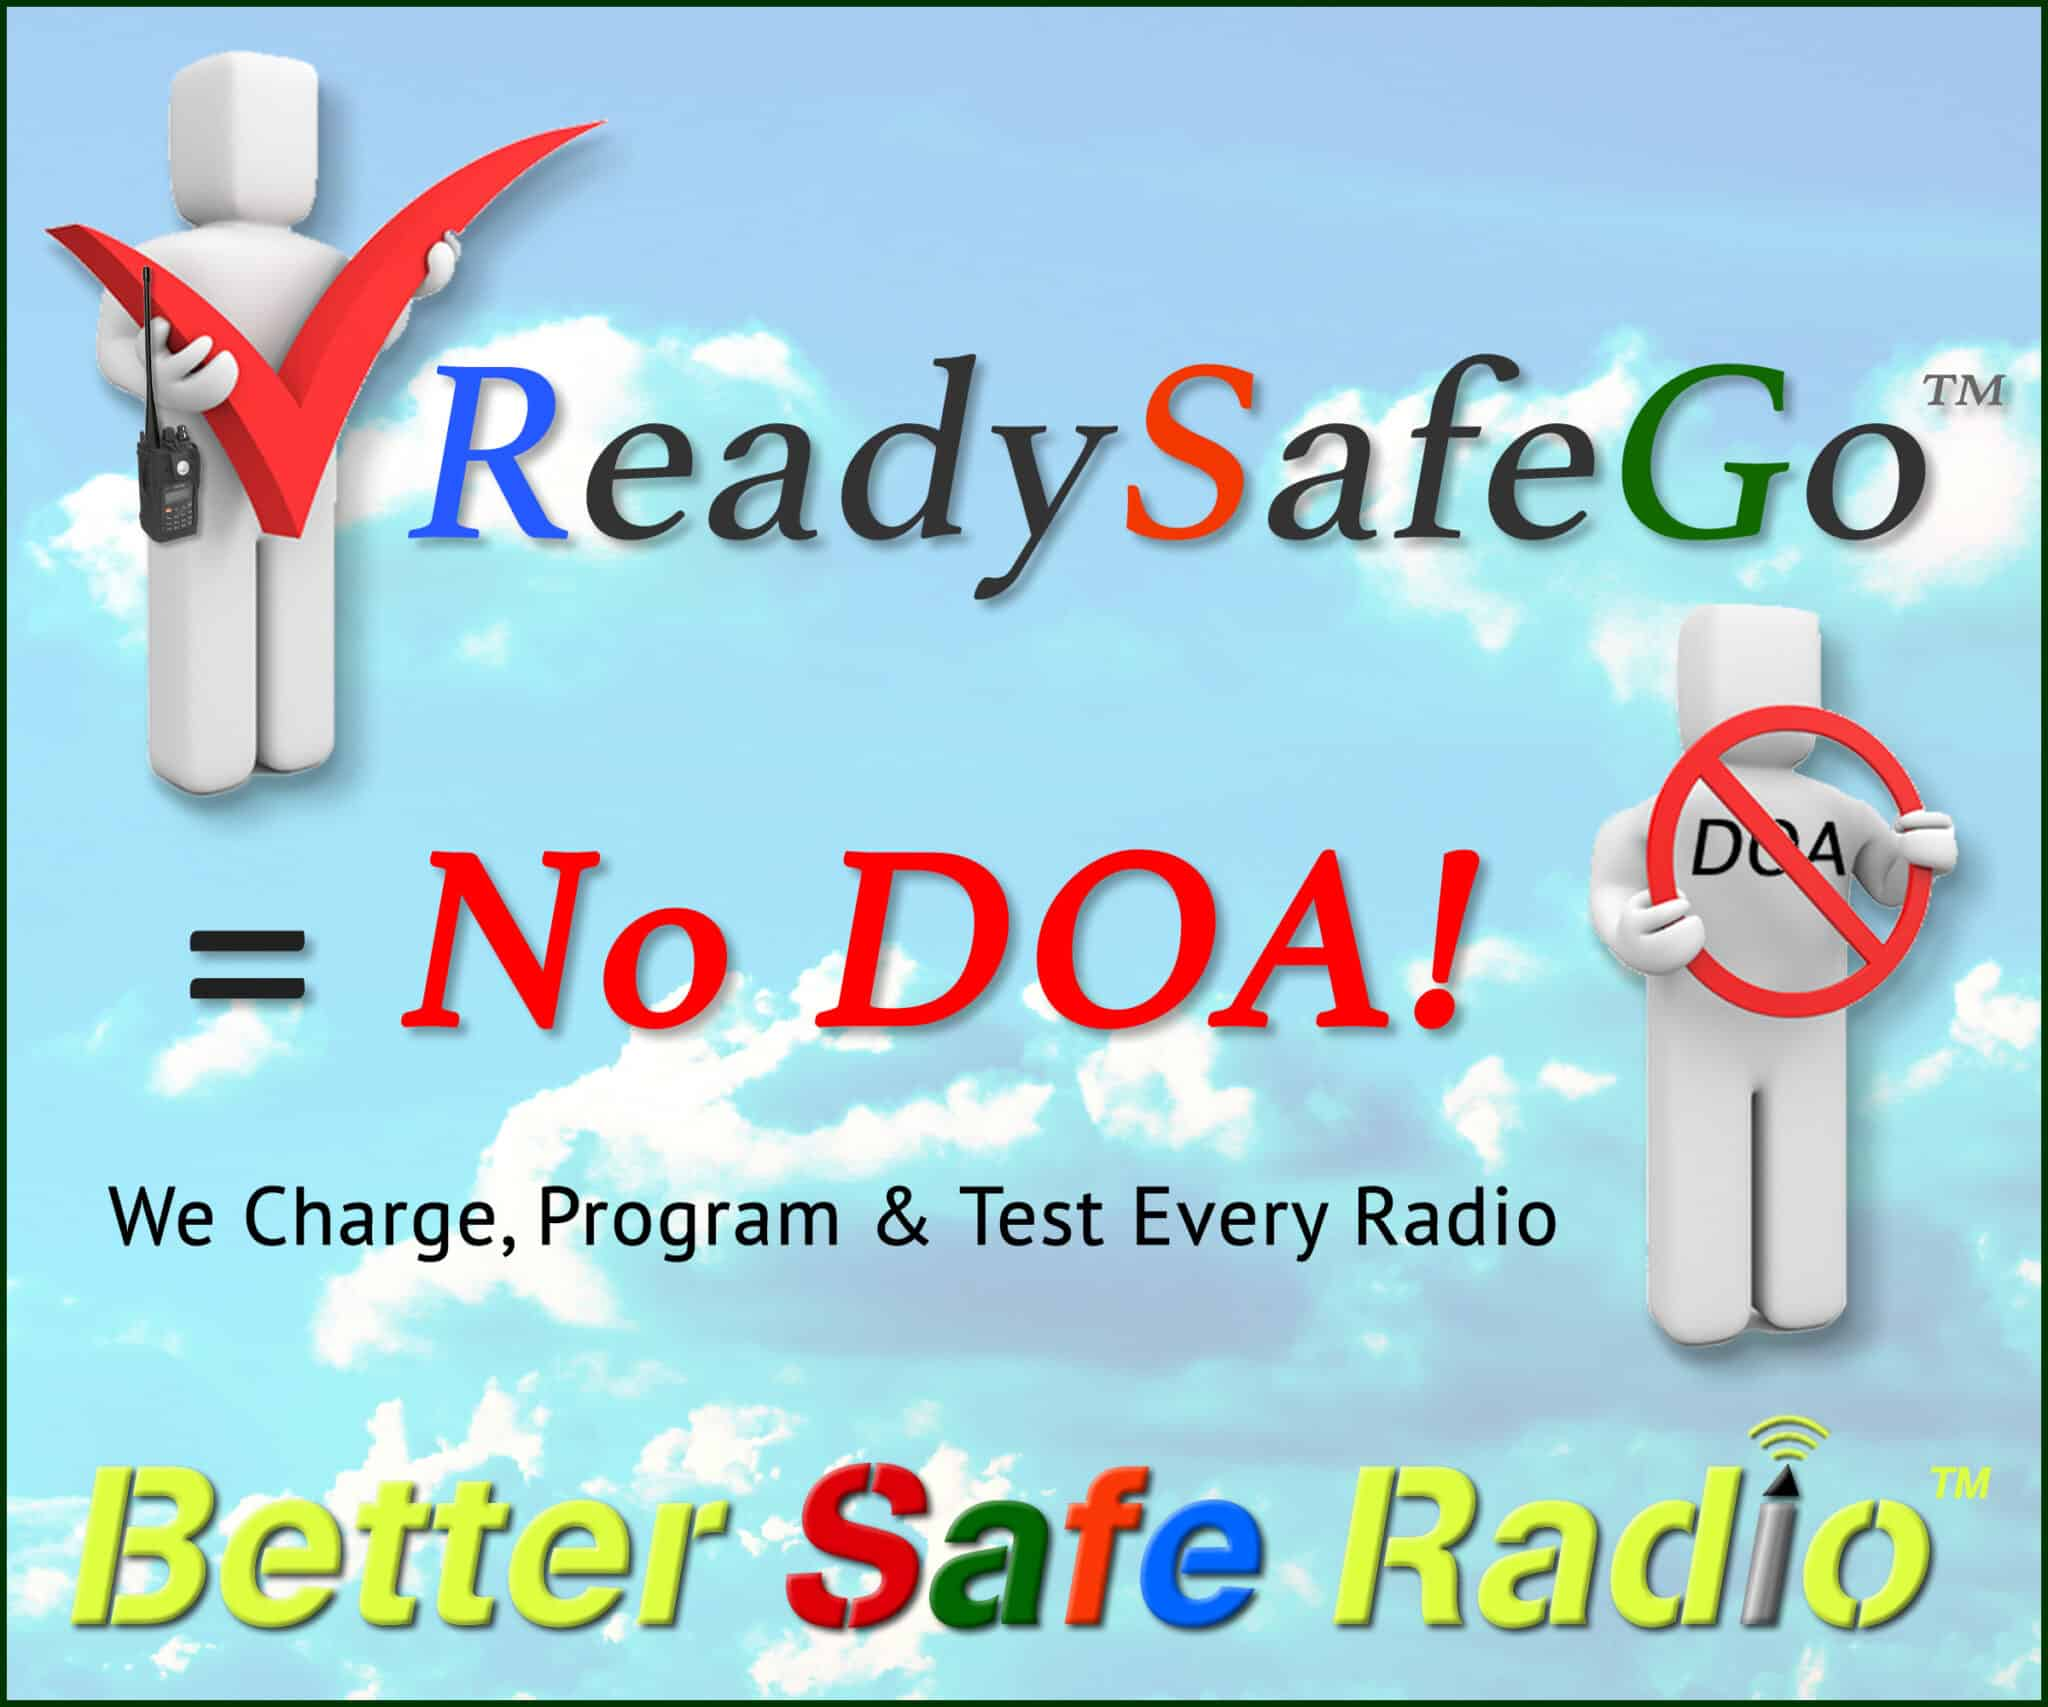 ReadySafeGo = No DOA!